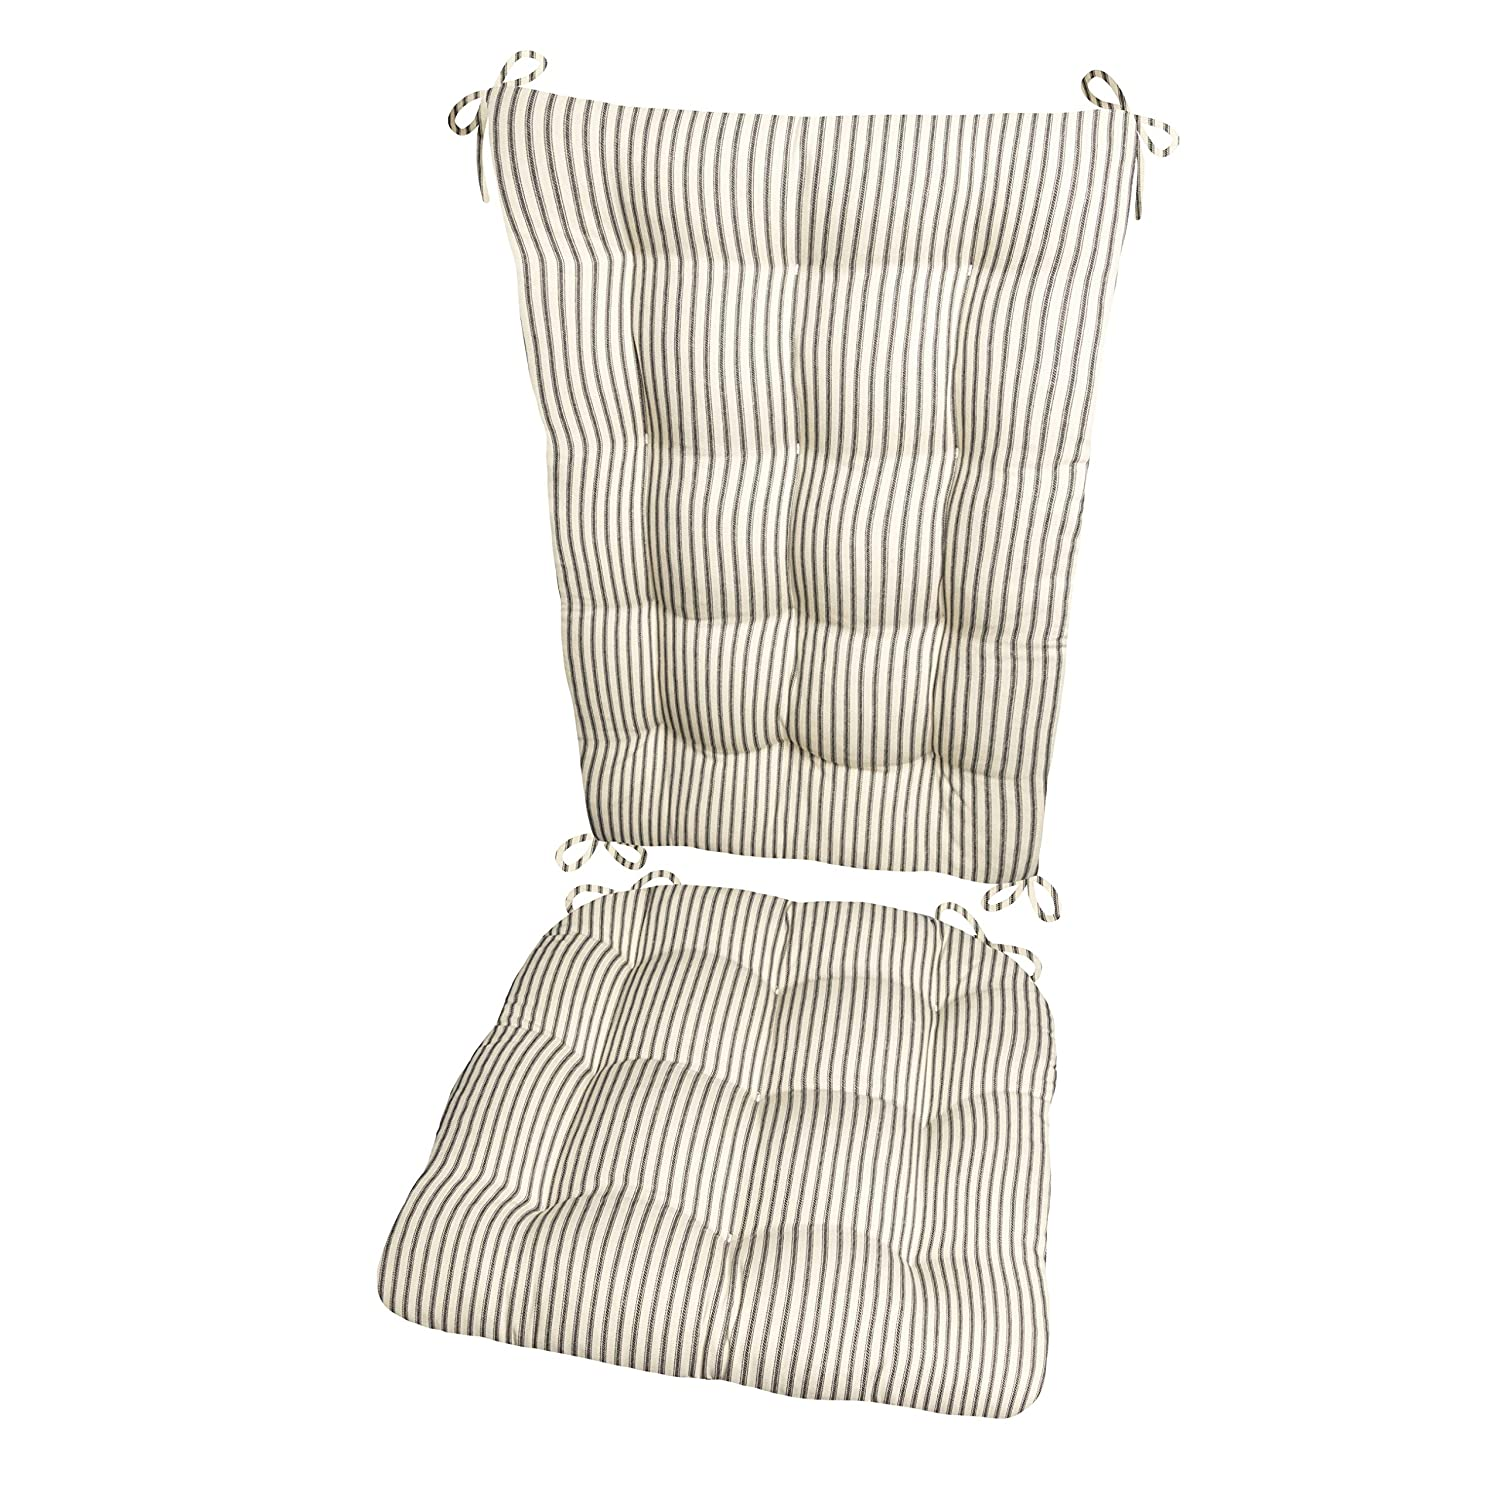 Barnett Products Ticking Stripe Black Rocking Chair Cushion Set - Standard - Seat Pad and Back Rest with ties- Reversible Latex Foam Fill - Made in USA ...  sc 1 st  Amazon.com & Amazon.com: Barnett Products Ticking Stripe Black Rocking Chair ...